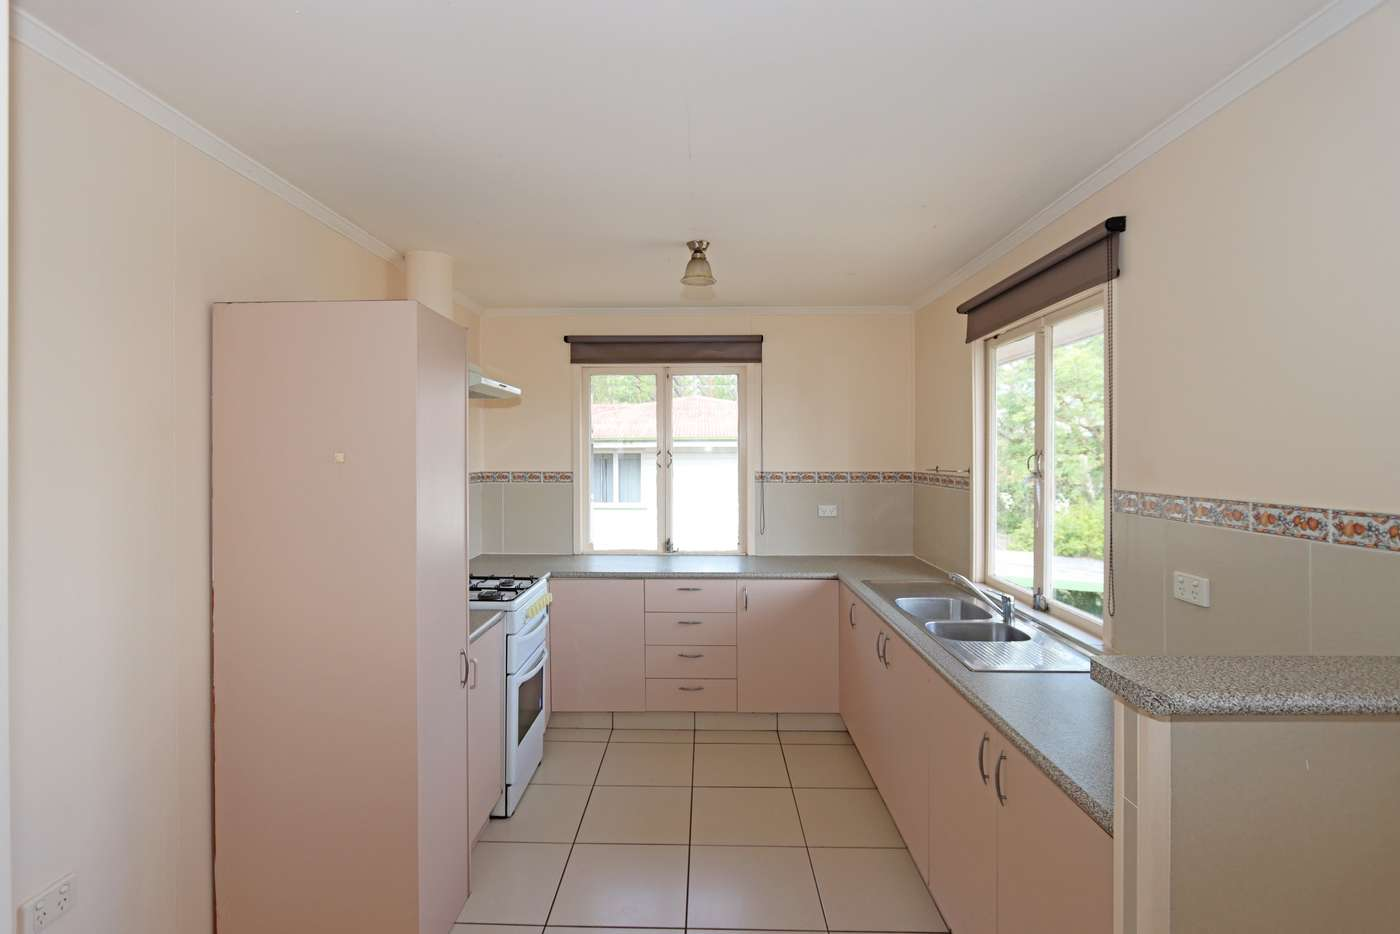 Seventh view of Homely house listing, 38 ASPINALL STREET, Leichhardt QLD 4305